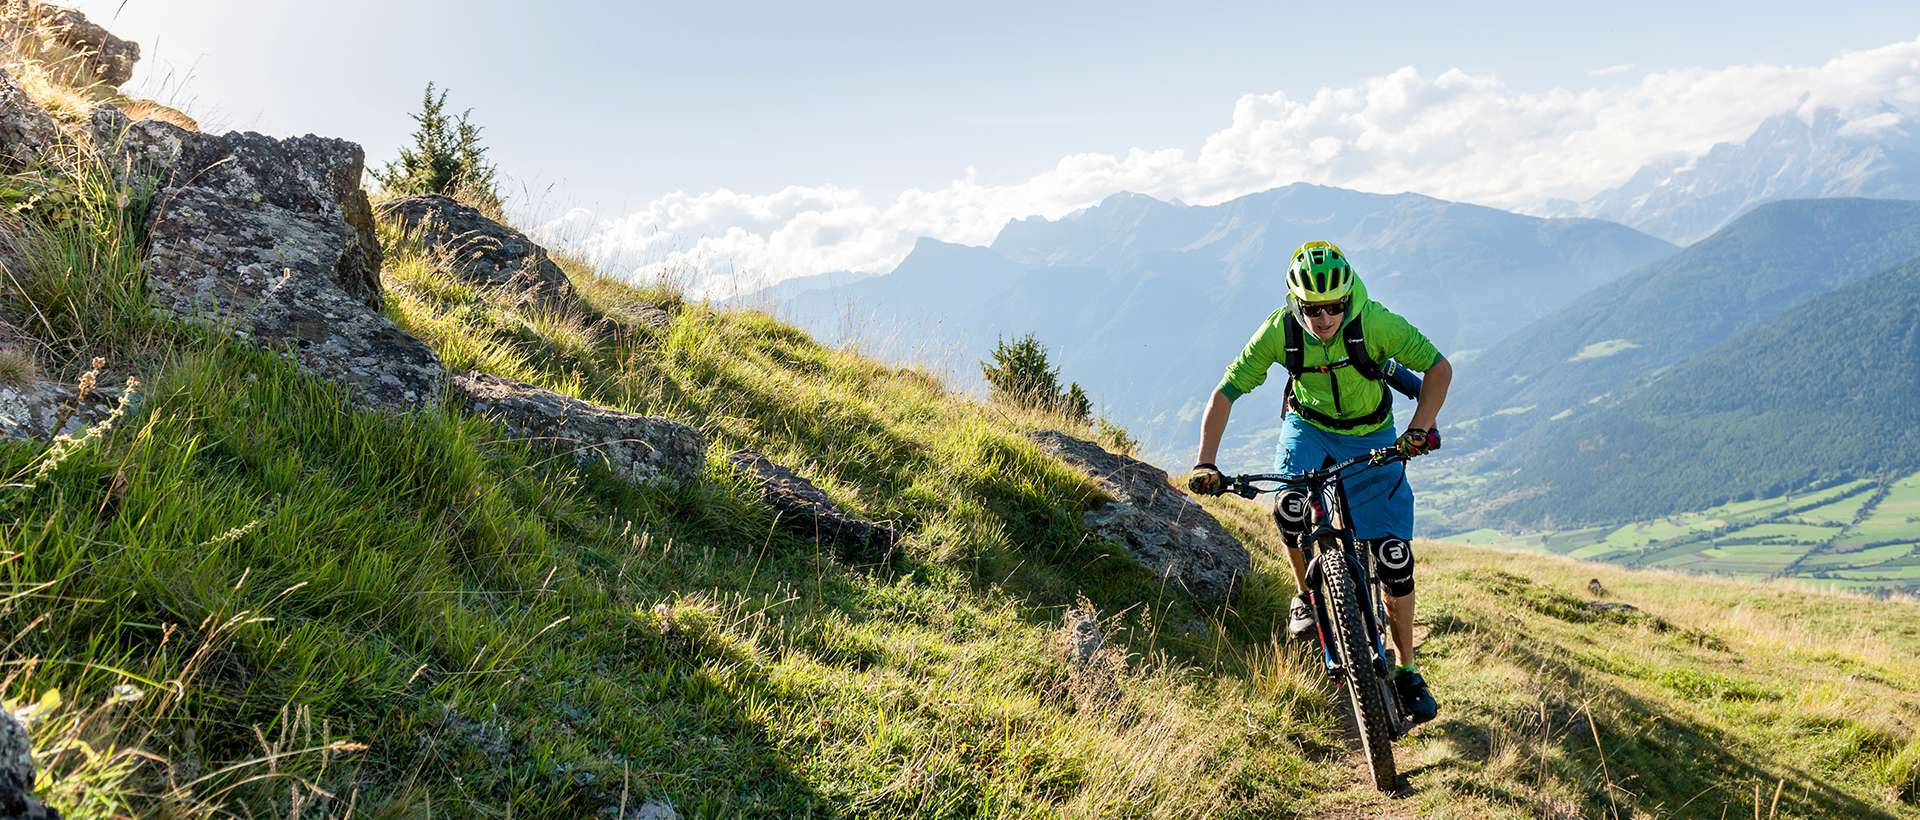 Guided mountainbike tours